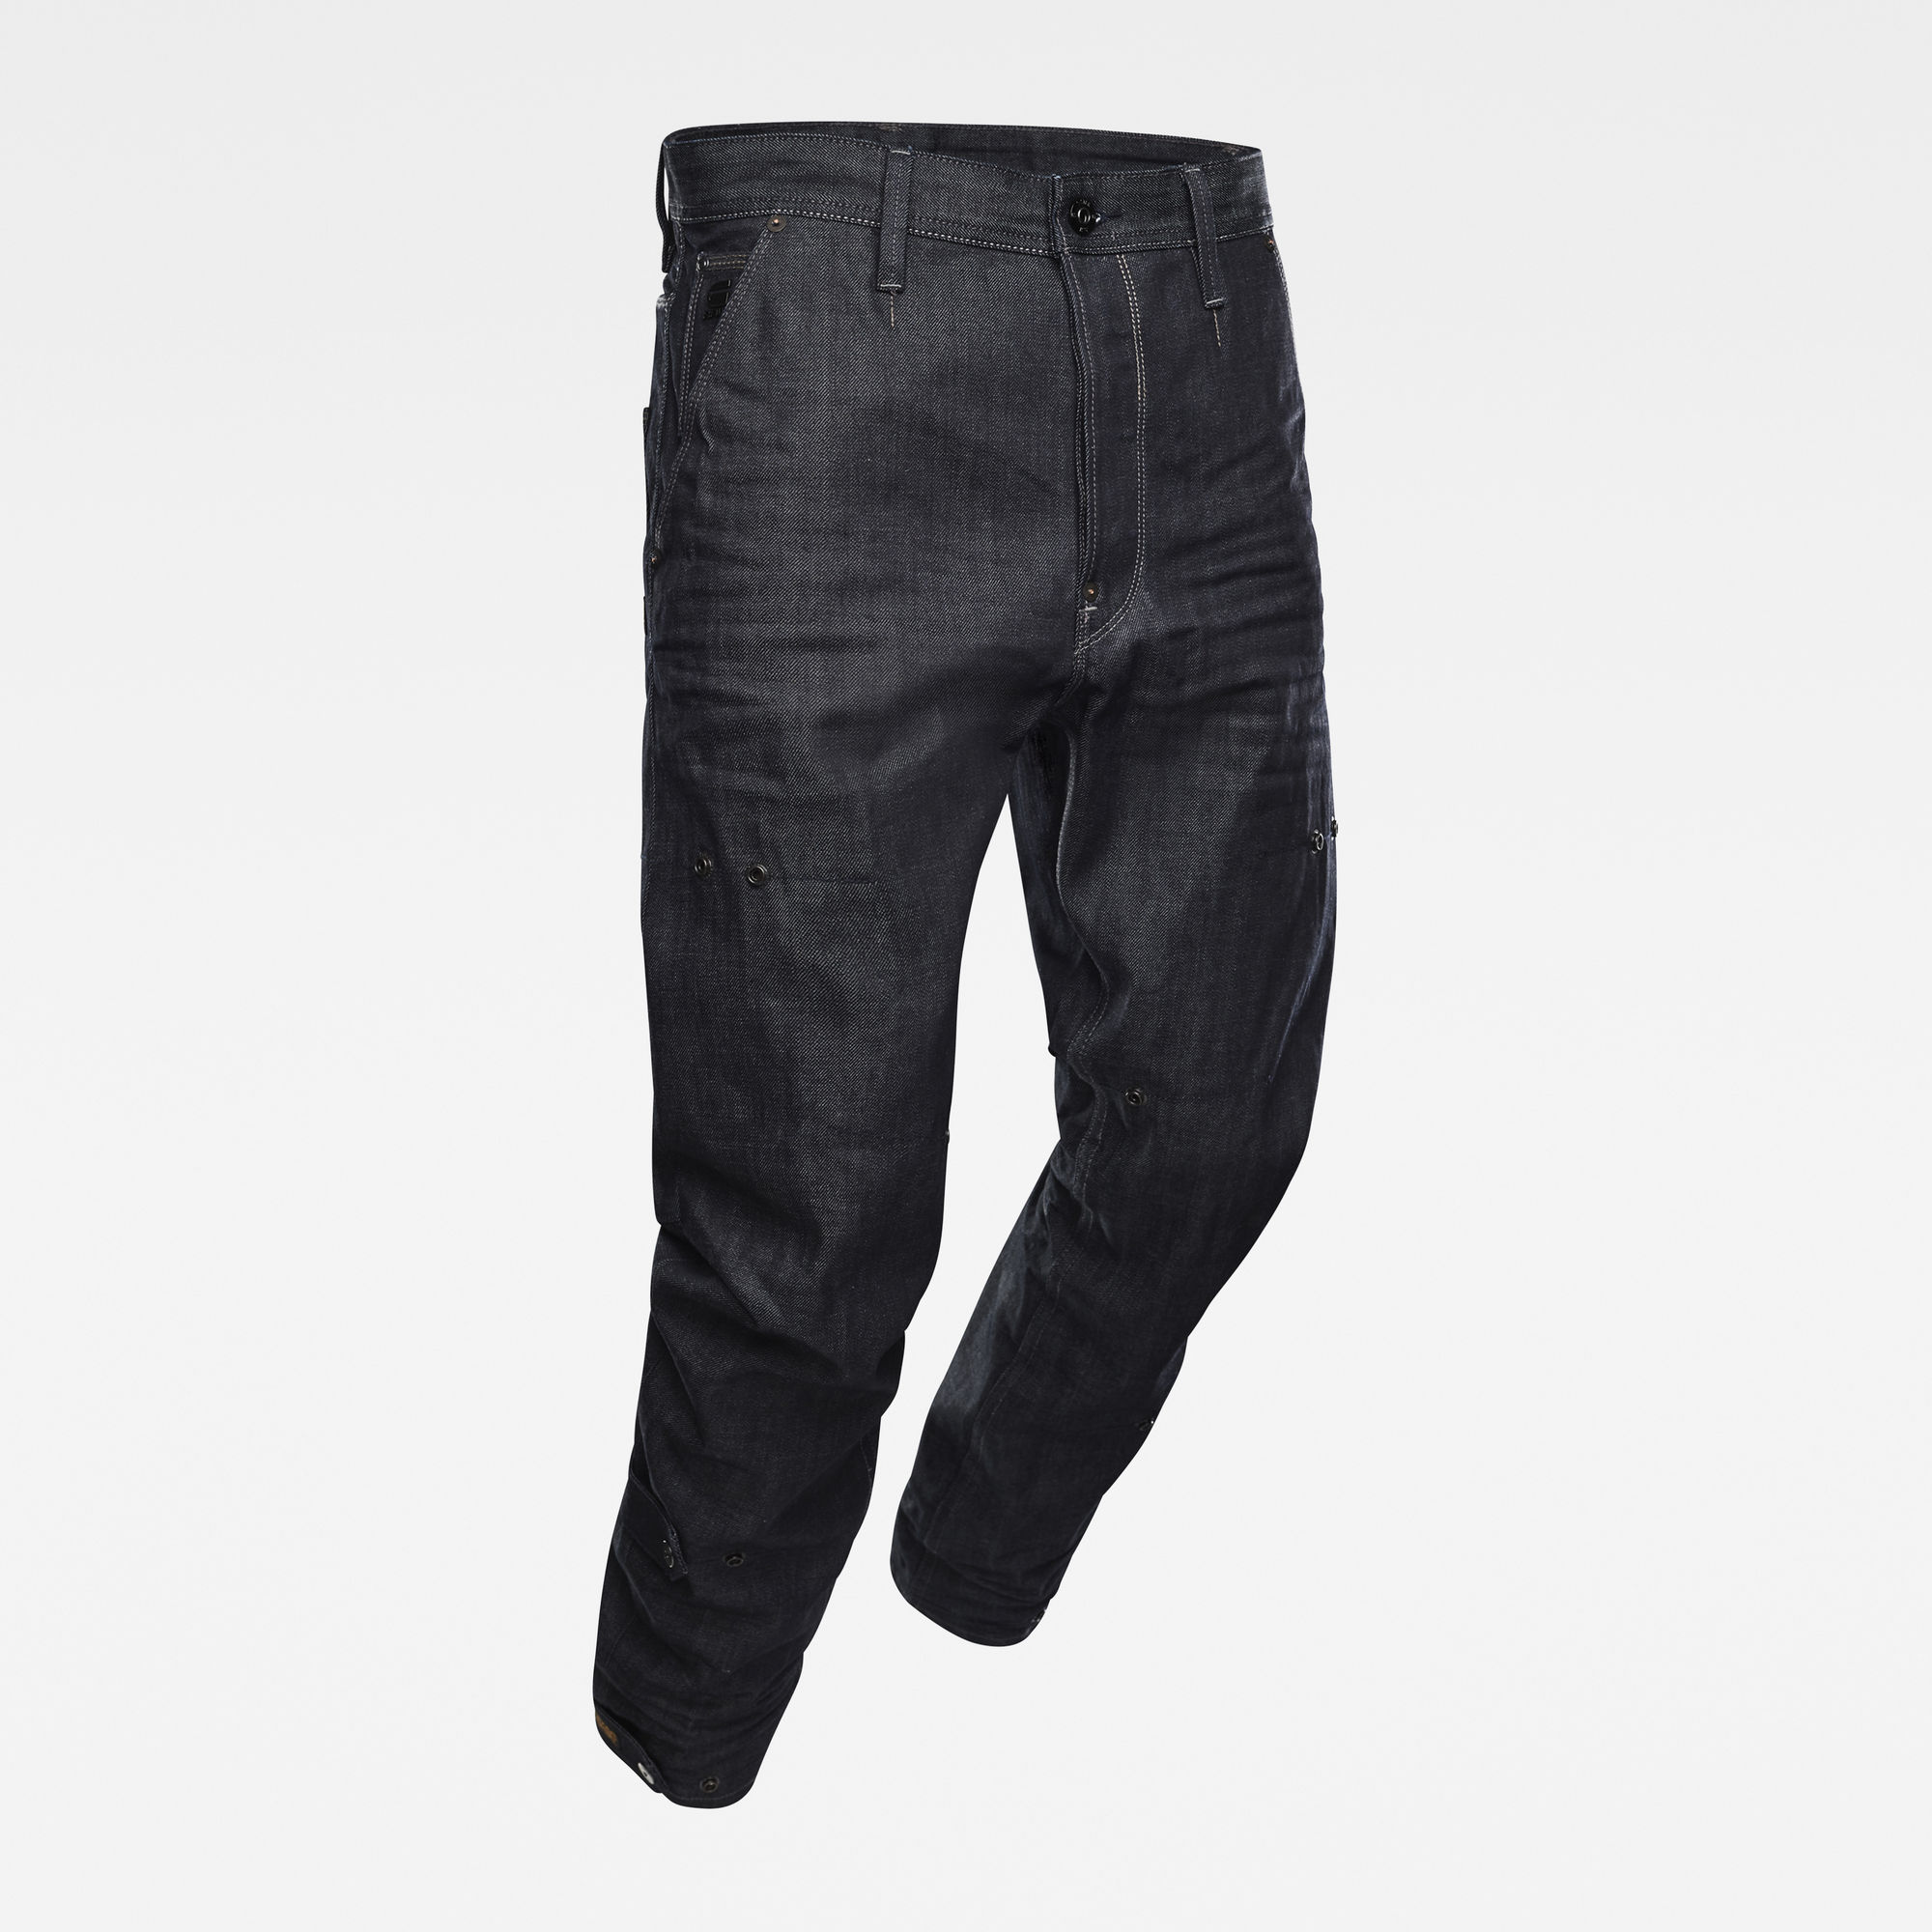 G-Star RAW Heren E Grip 3D Relaxed Tapered Adjusters Jeans Donkerblauw